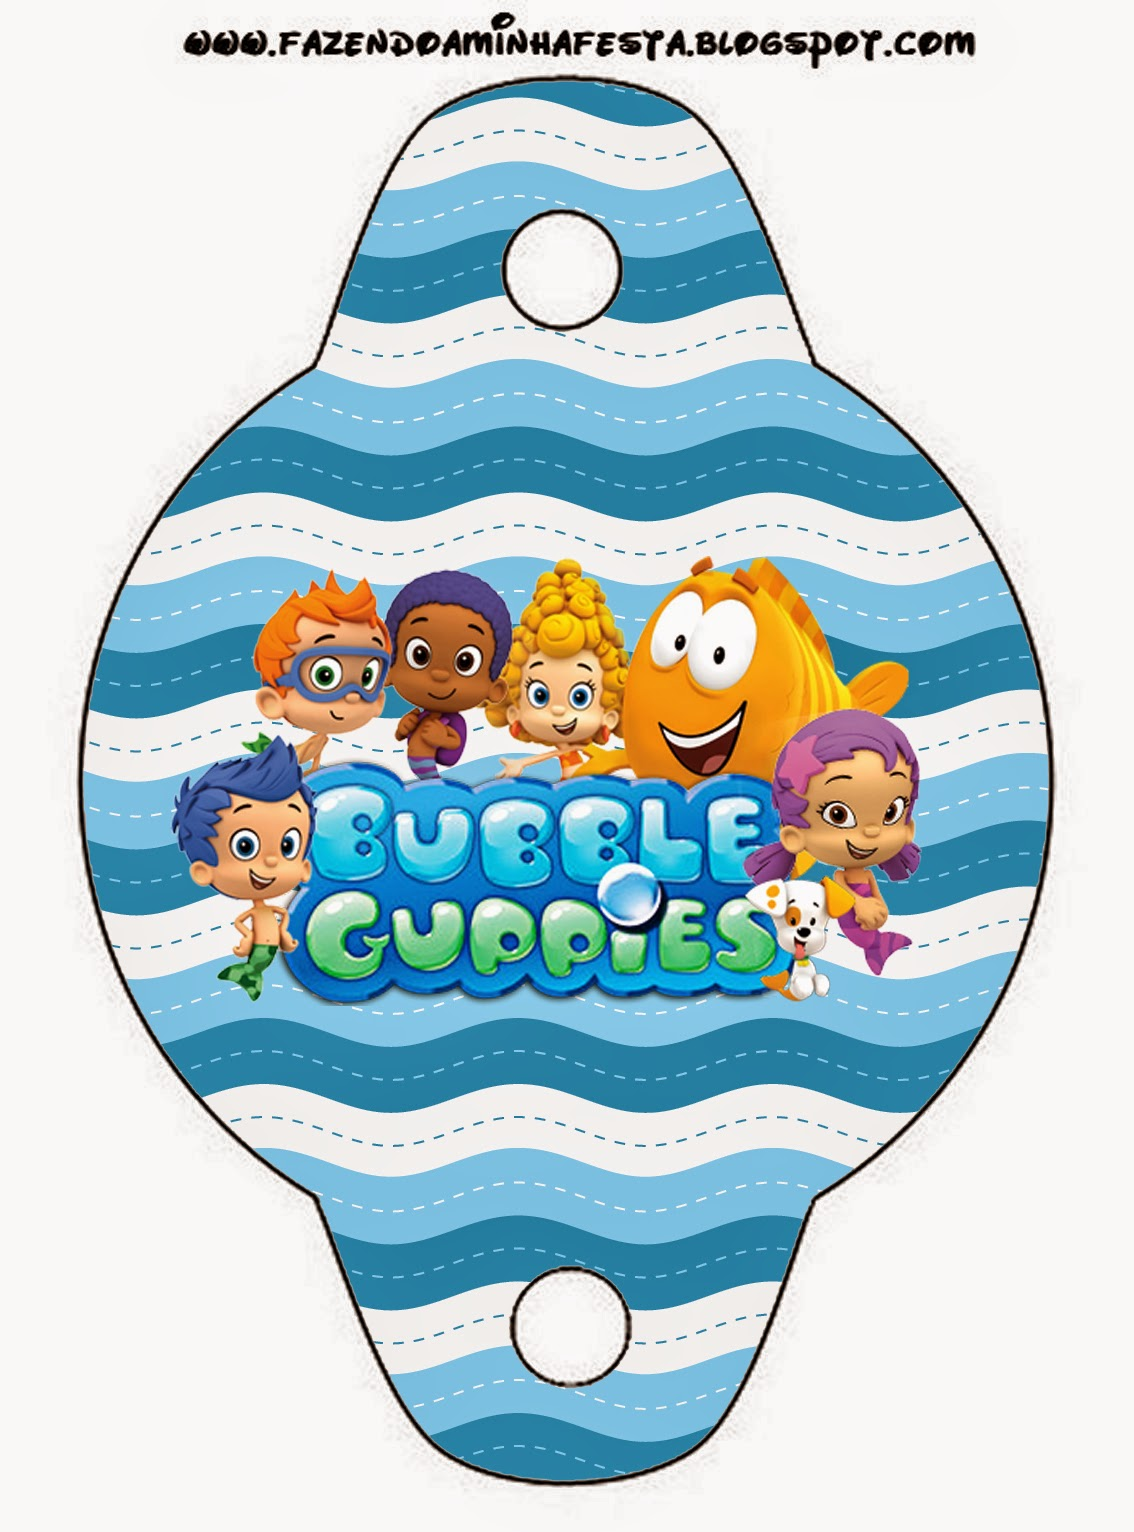 Bubble guppies free party printables is it for parties is it free is it cute has quality - Bubble guppies birthday banner template ...